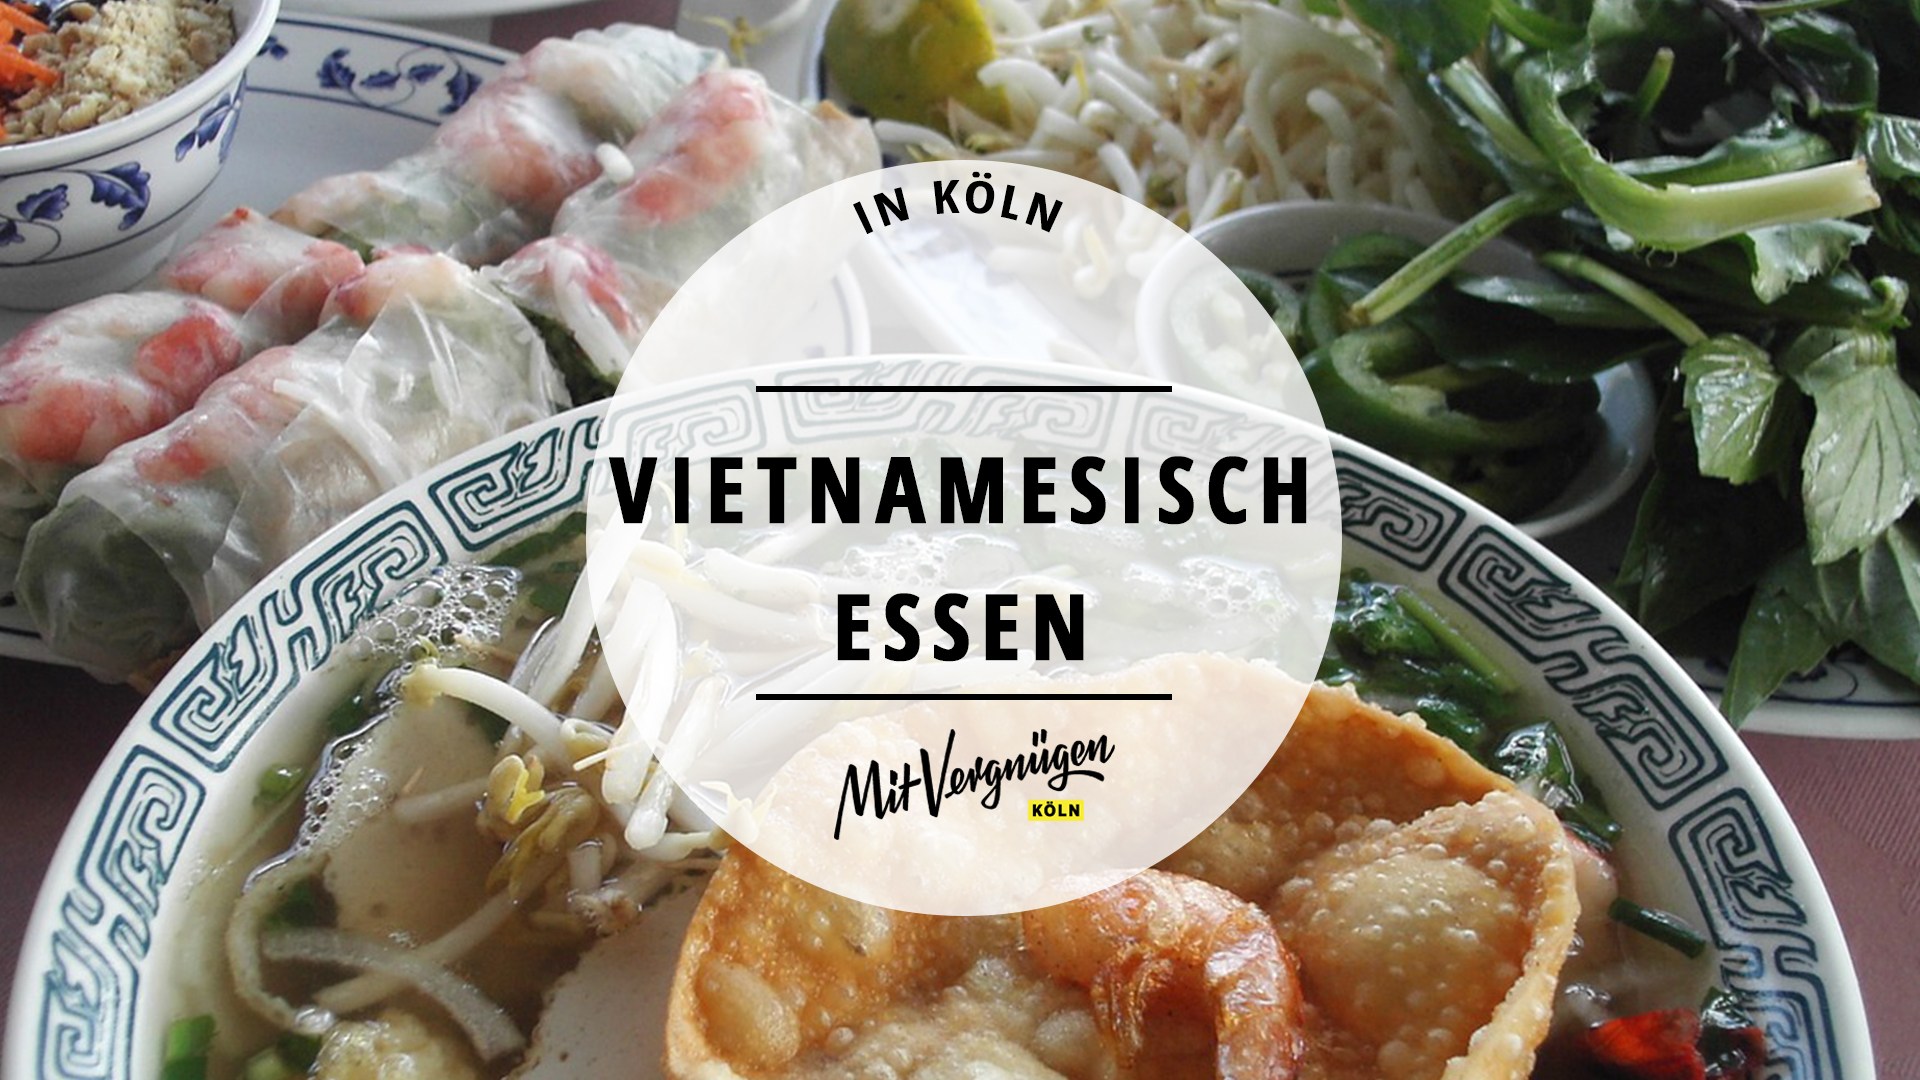 11 restaurants in denen ihr lecker vietnamesisch essen k nnt mit vergn gen k ln. Black Bedroom Furniture Sets. Home Design Ideas